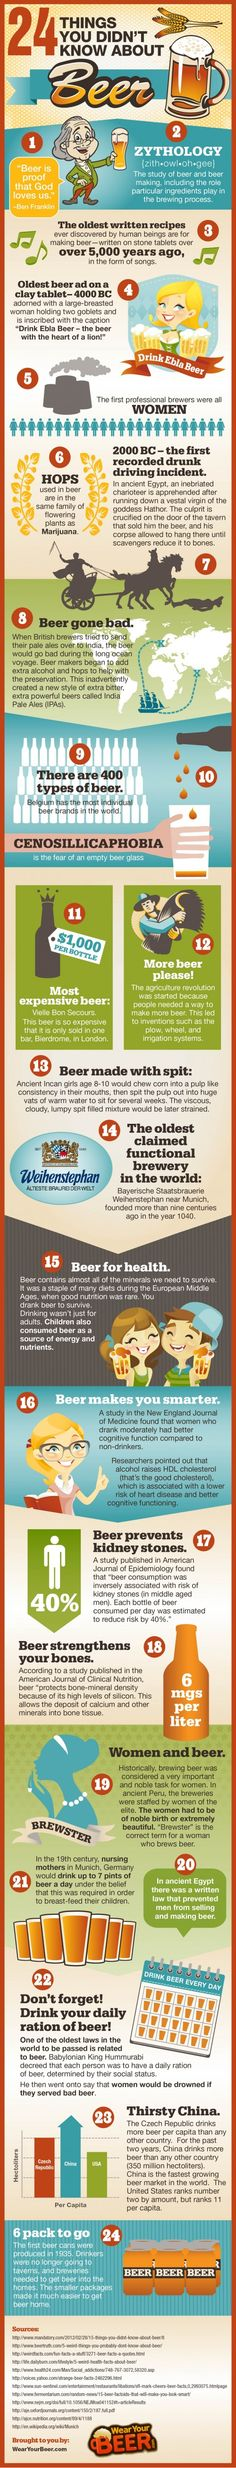 24 Things You Didn't Know About Beer – Infographic on http://www.bestinfographic.co.uk